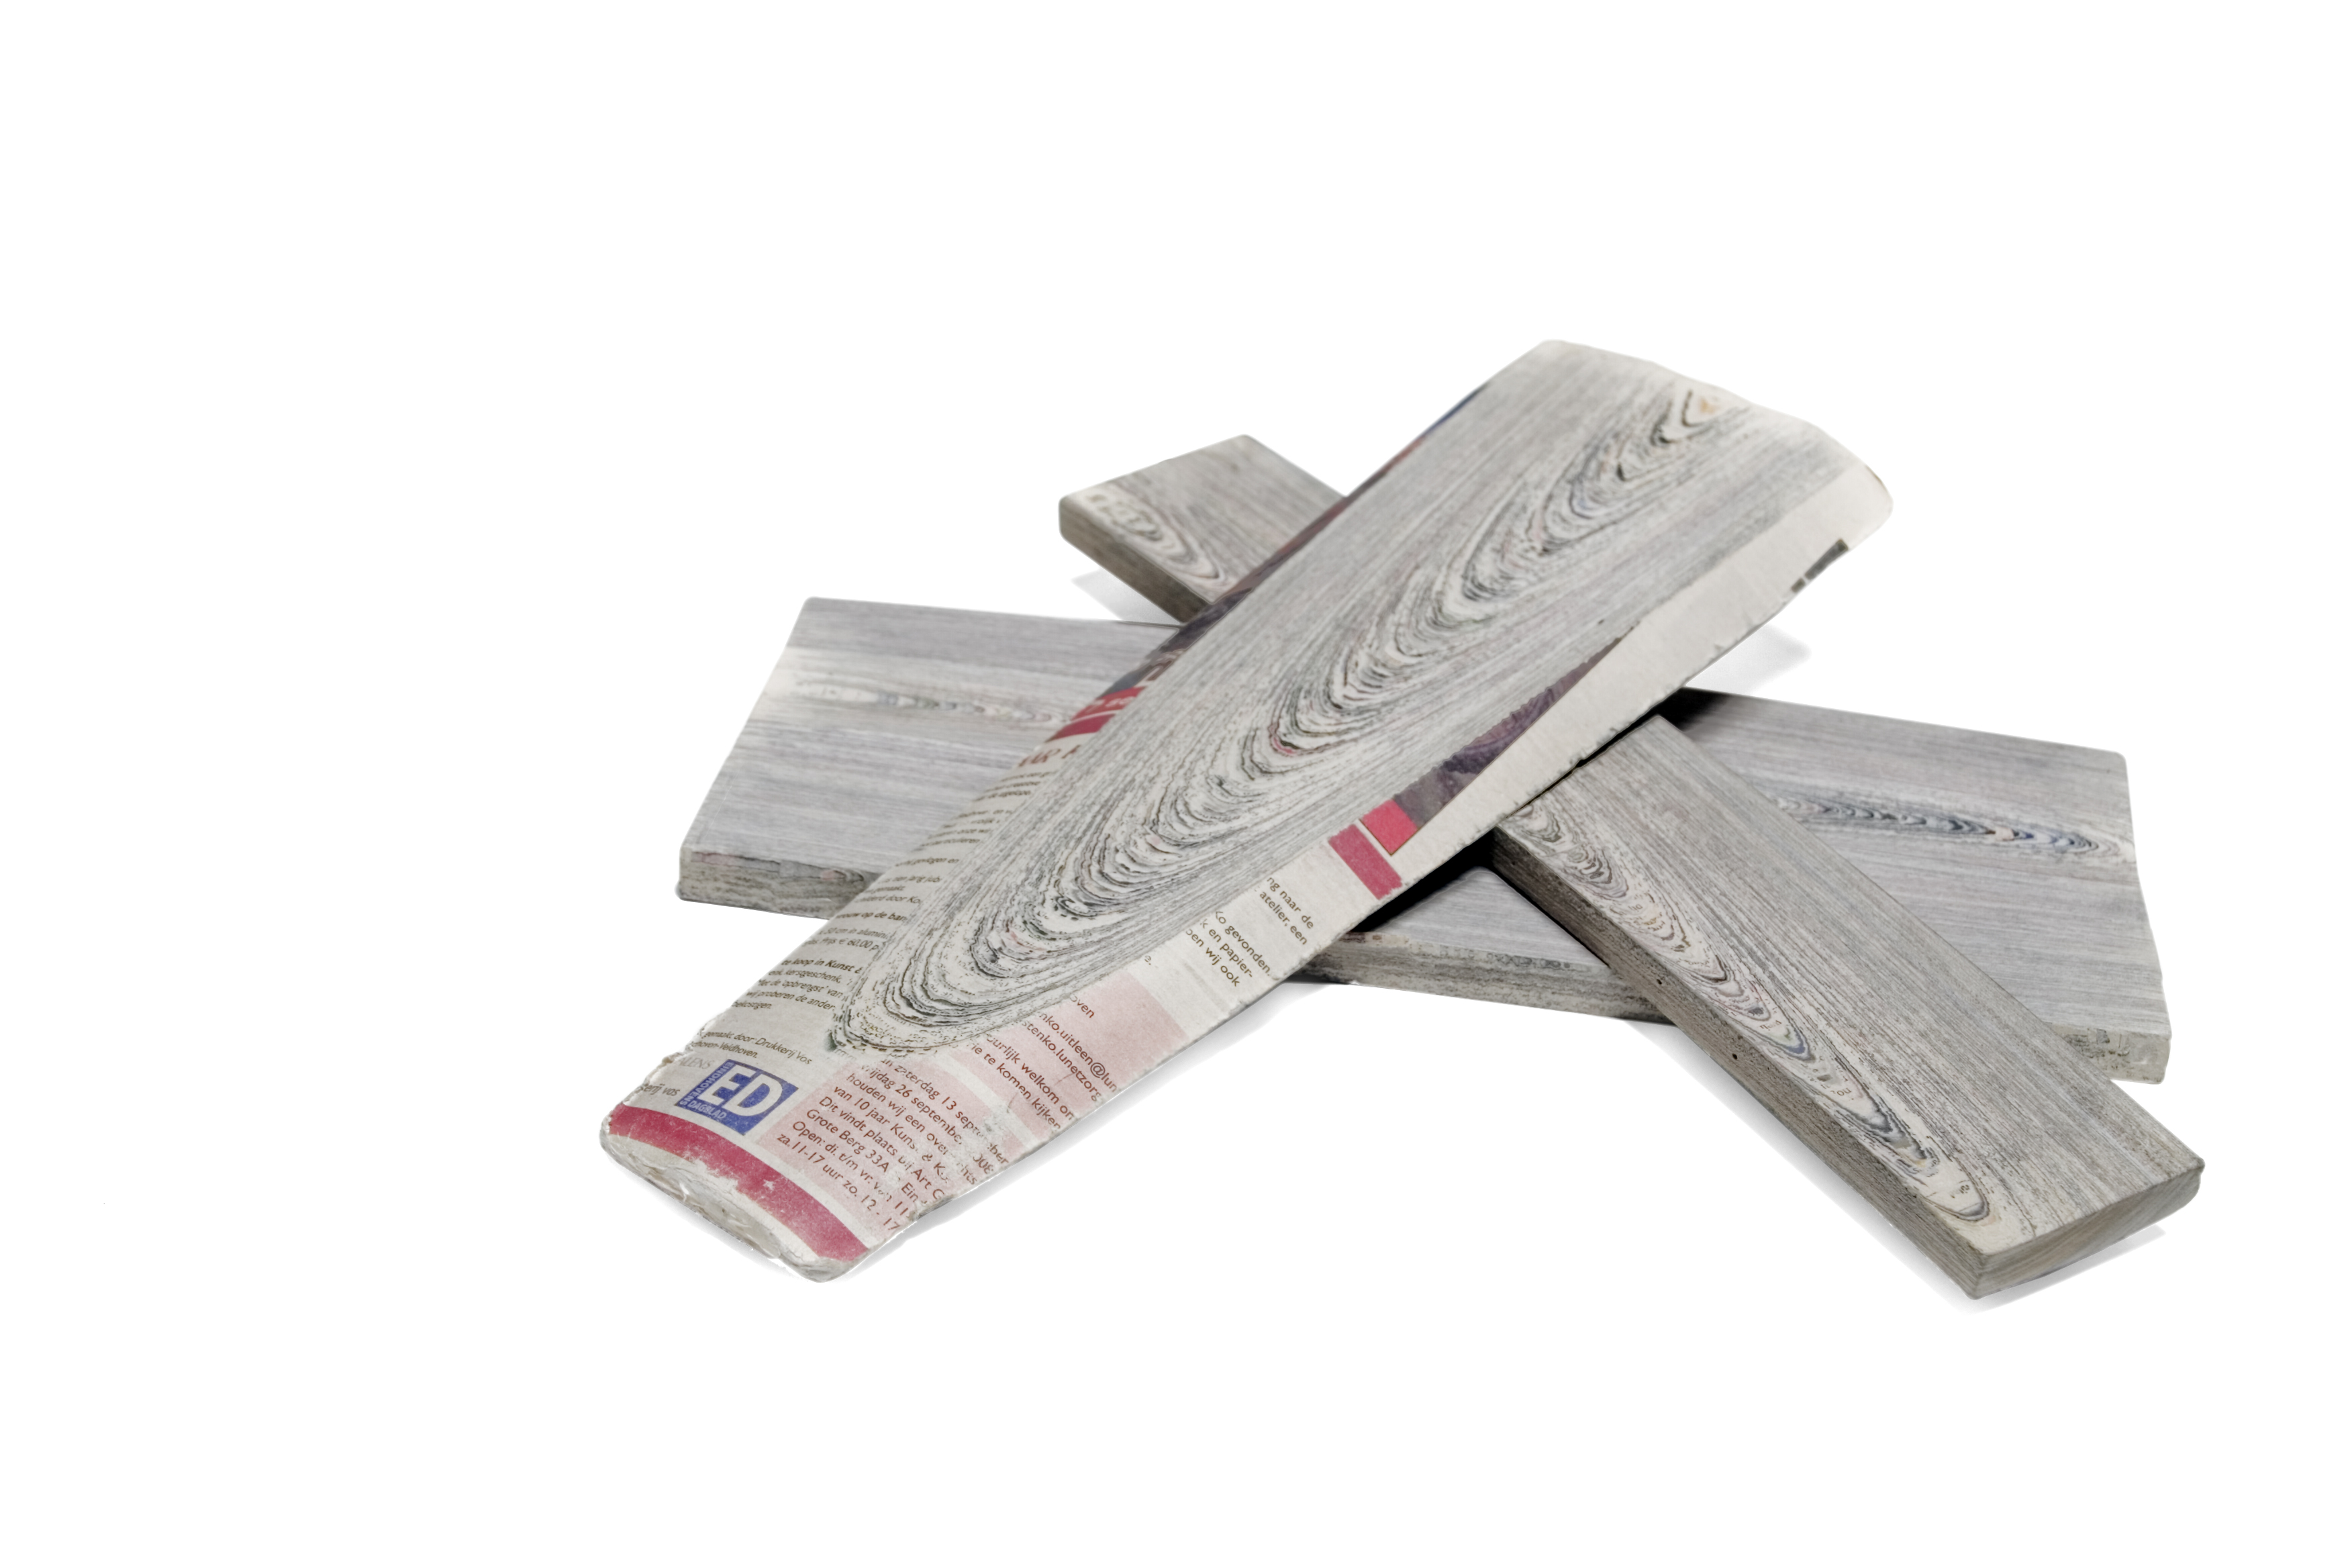 newspaper-wood-sakhtyab